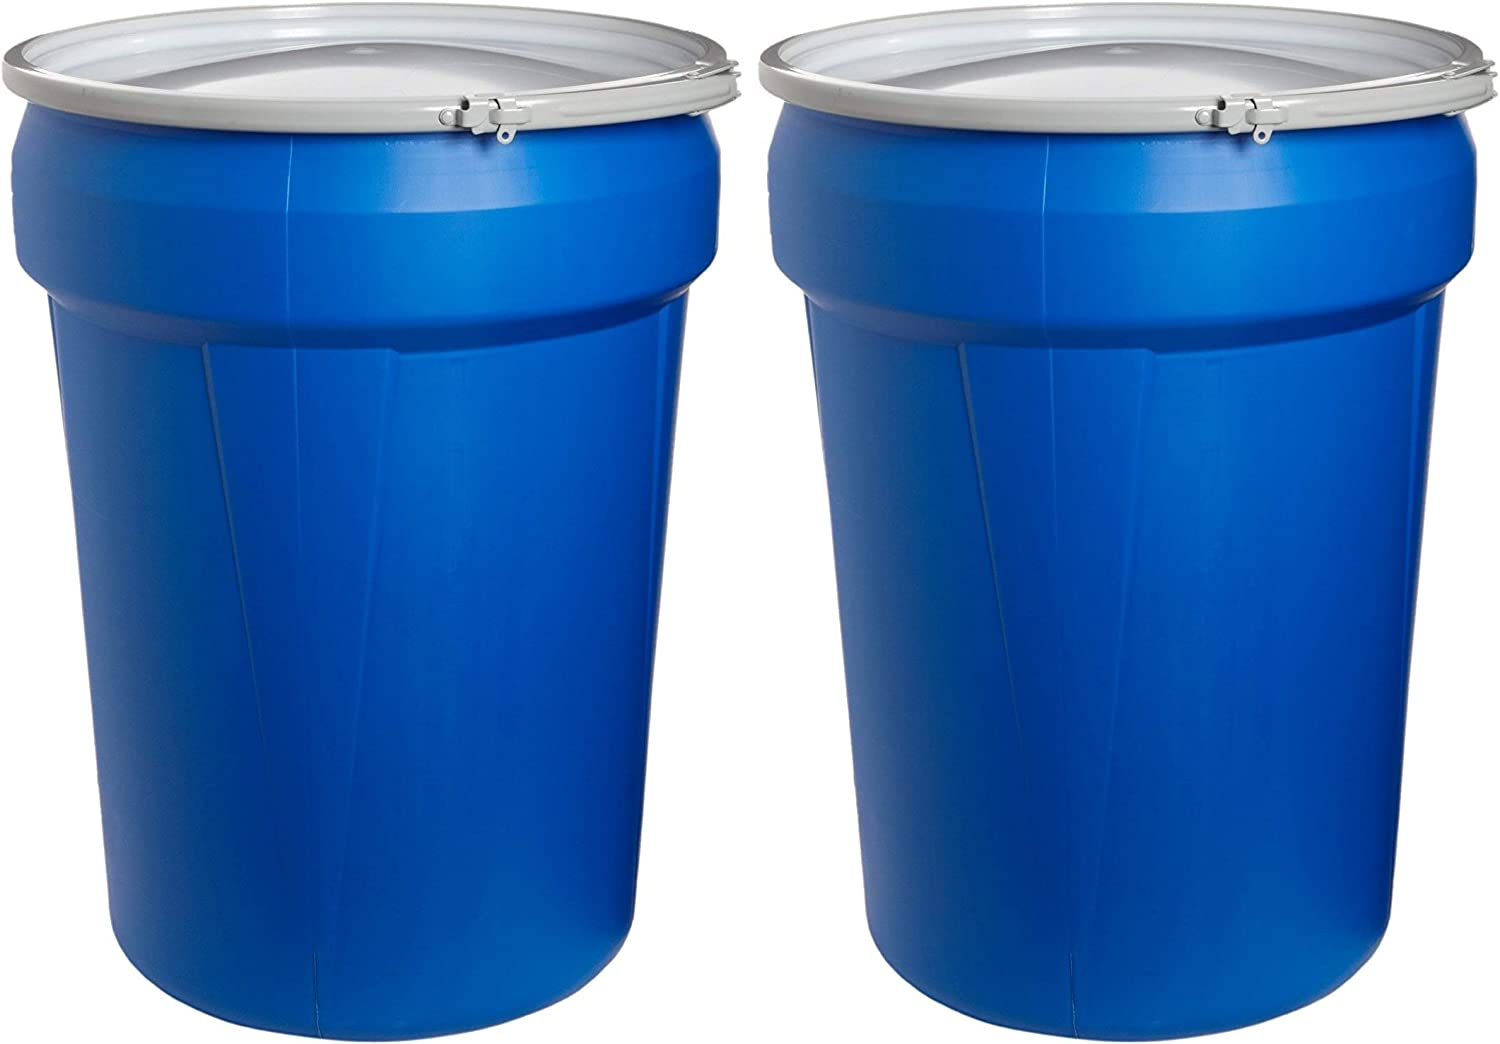 Eagle 1601MB Blue High Density Polyethylene Lab Pack Drum with Metal Lever-Lock Lid, 30 Gallon Capacity, 28.5